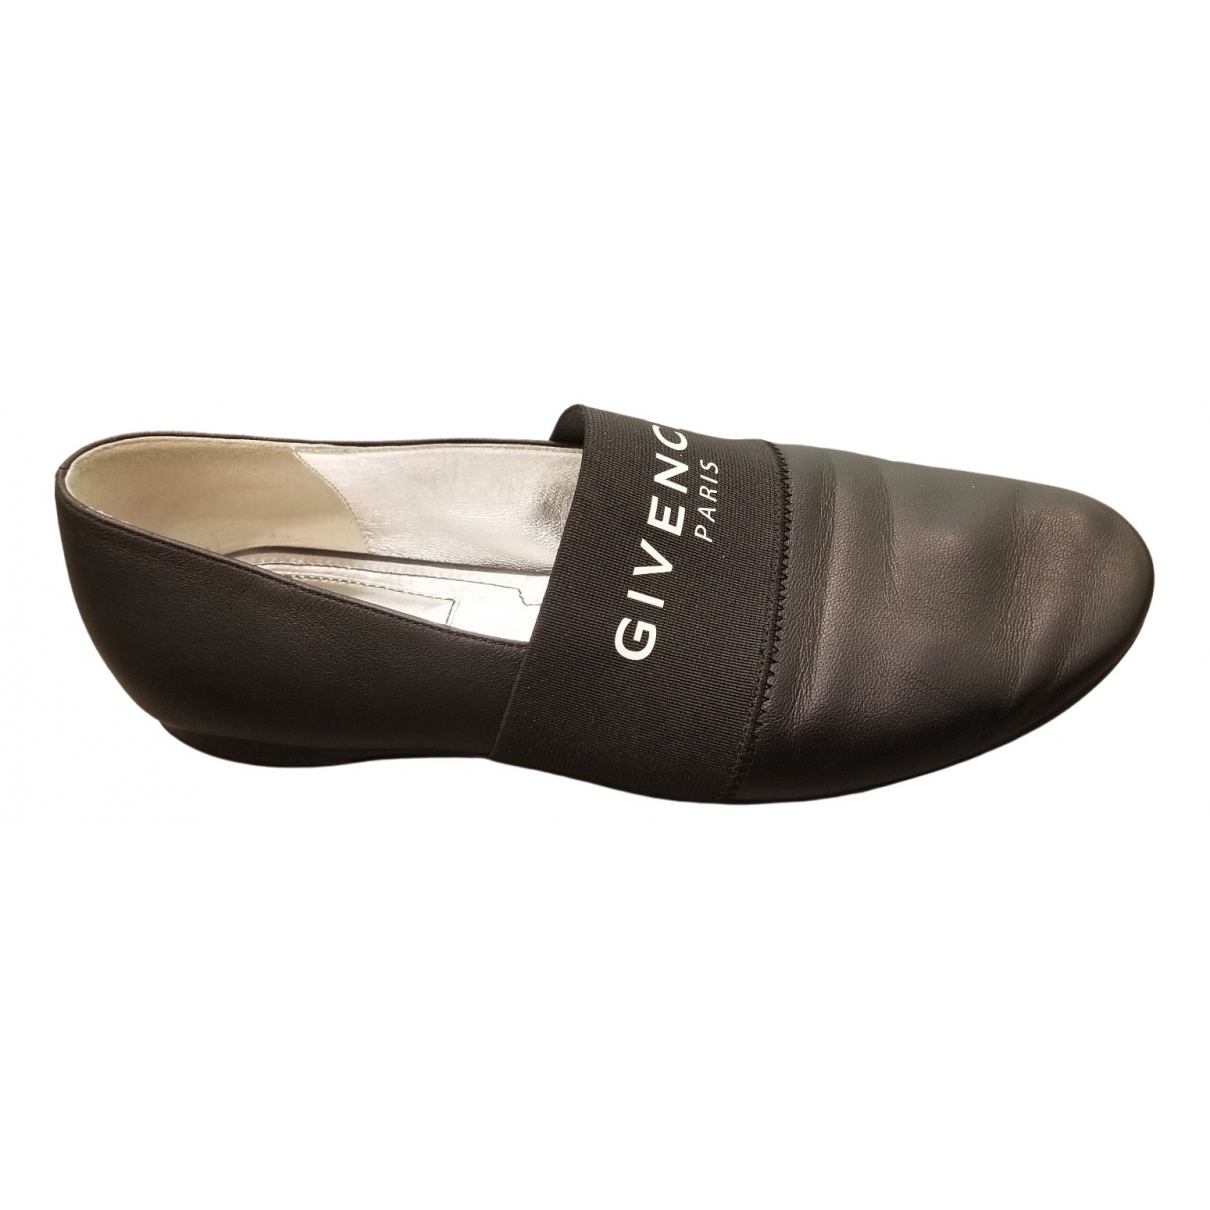 Givenchy \N Black Leather Flats for Women 36 EU